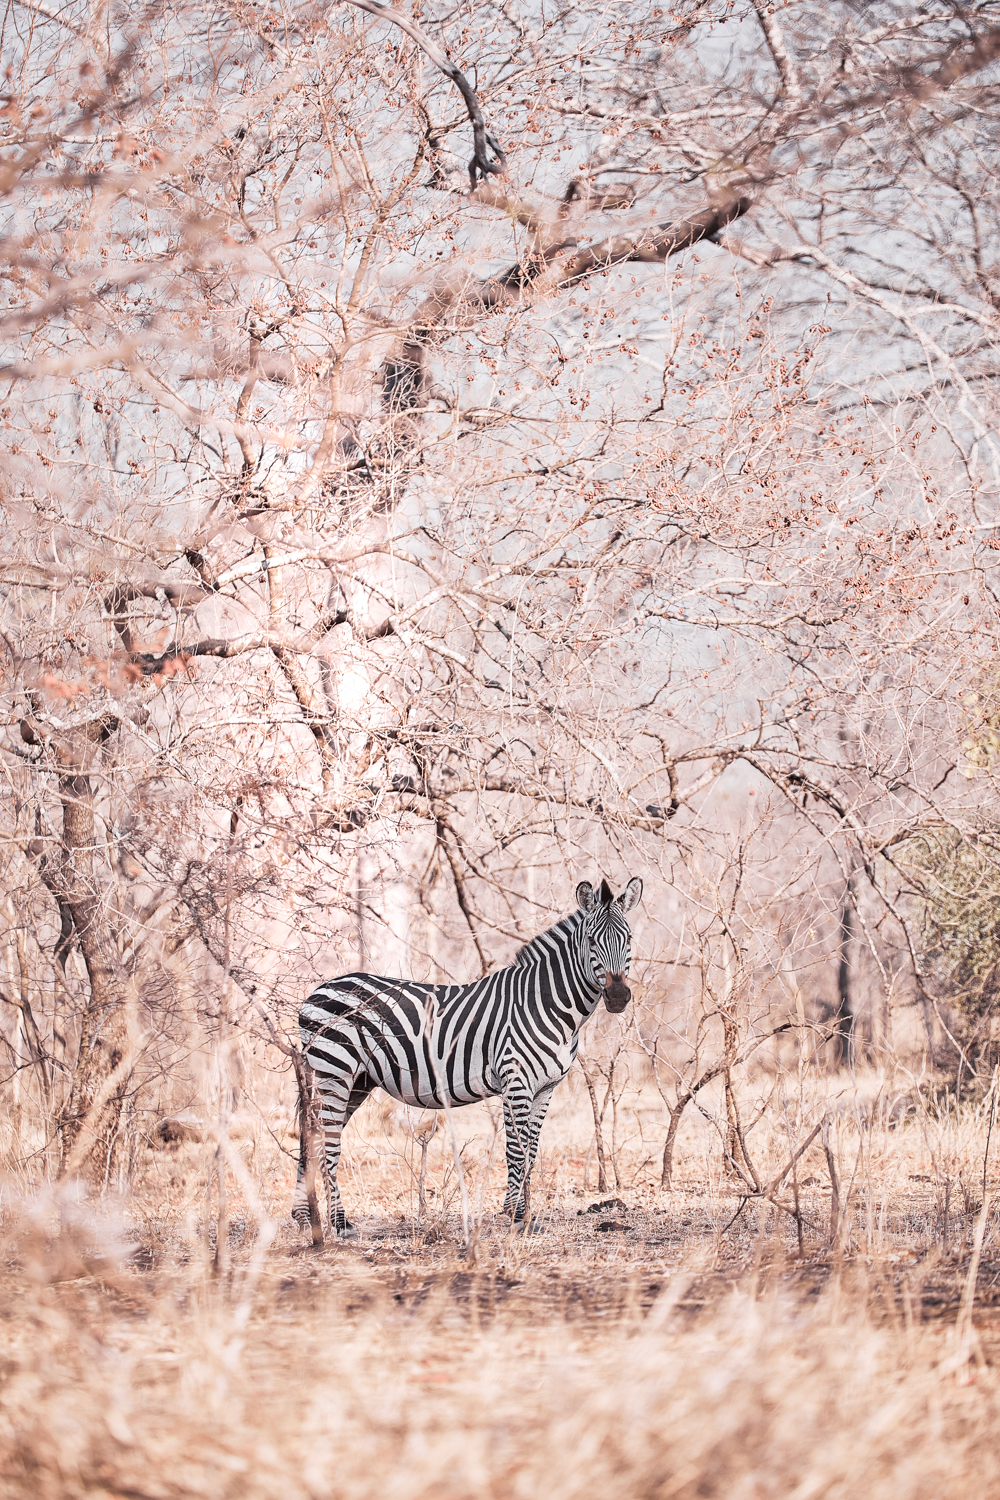 A zebra in Africa (credit Nico Wills)